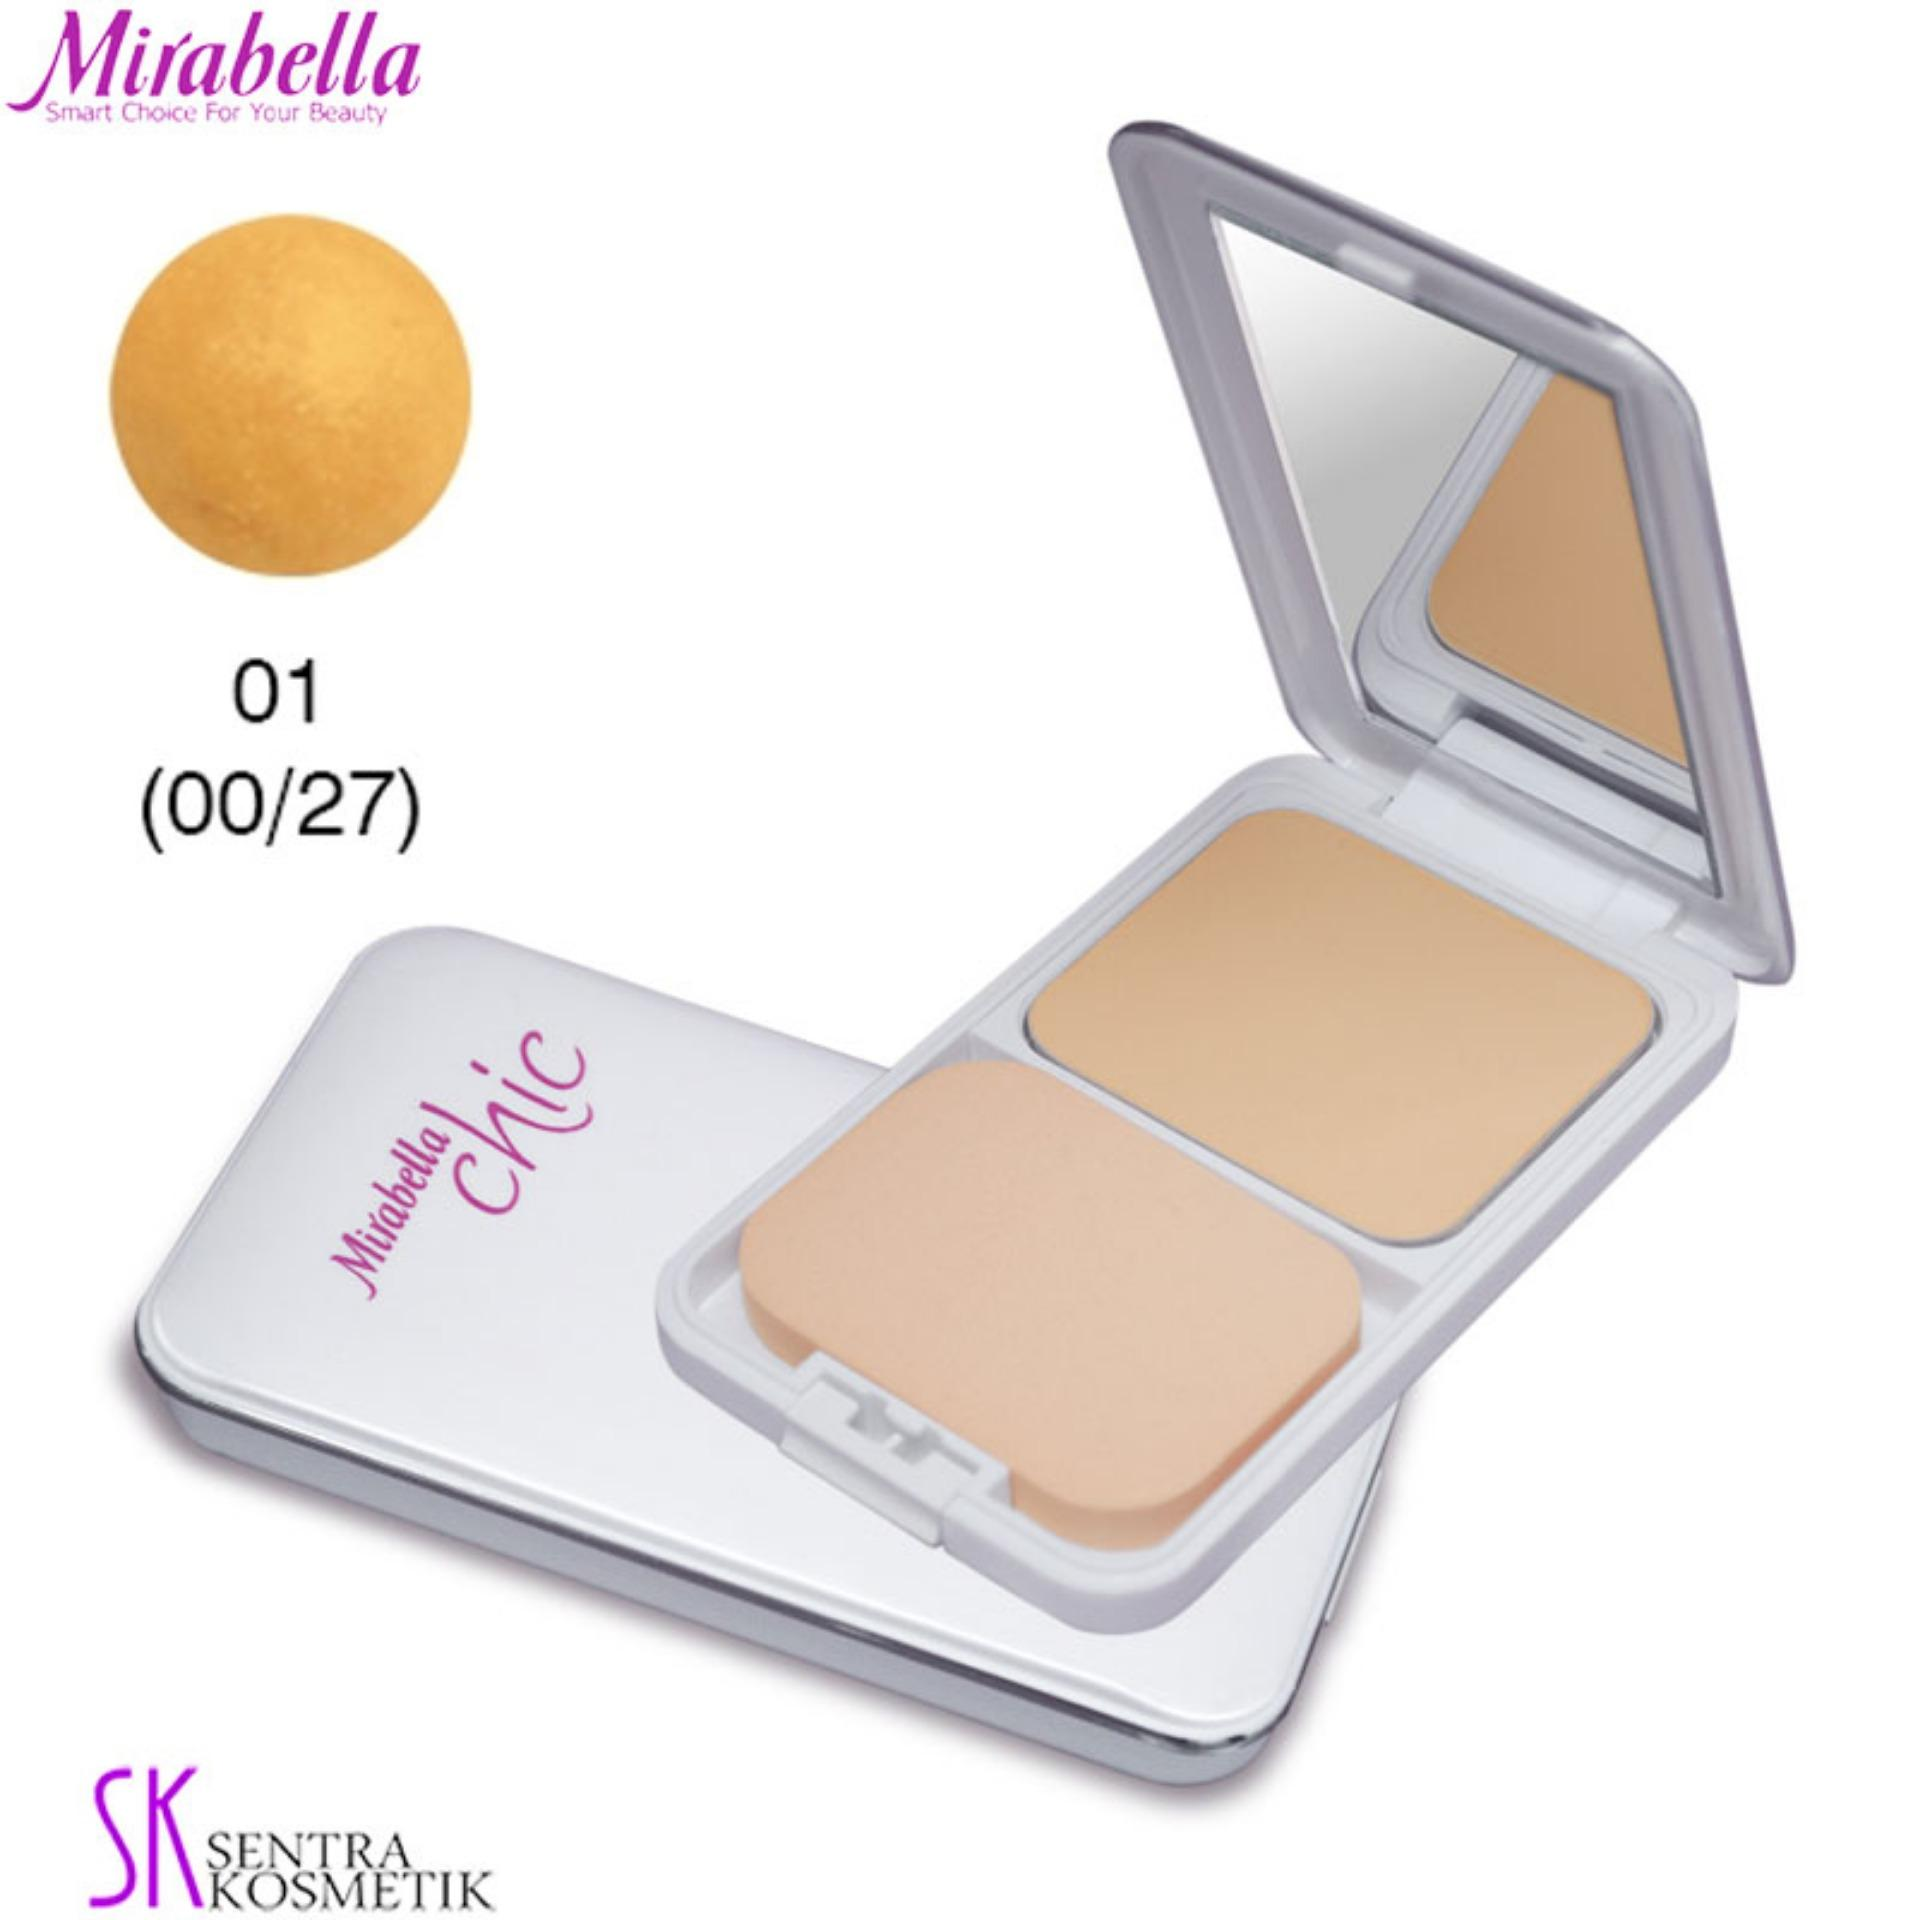 Buy Sell Cheapest 01 Pesona Powder Best Quality Product Deals Bioaqua Chic Trendy Soft Rose Blush On Mirabella Two Way Cake Uv White